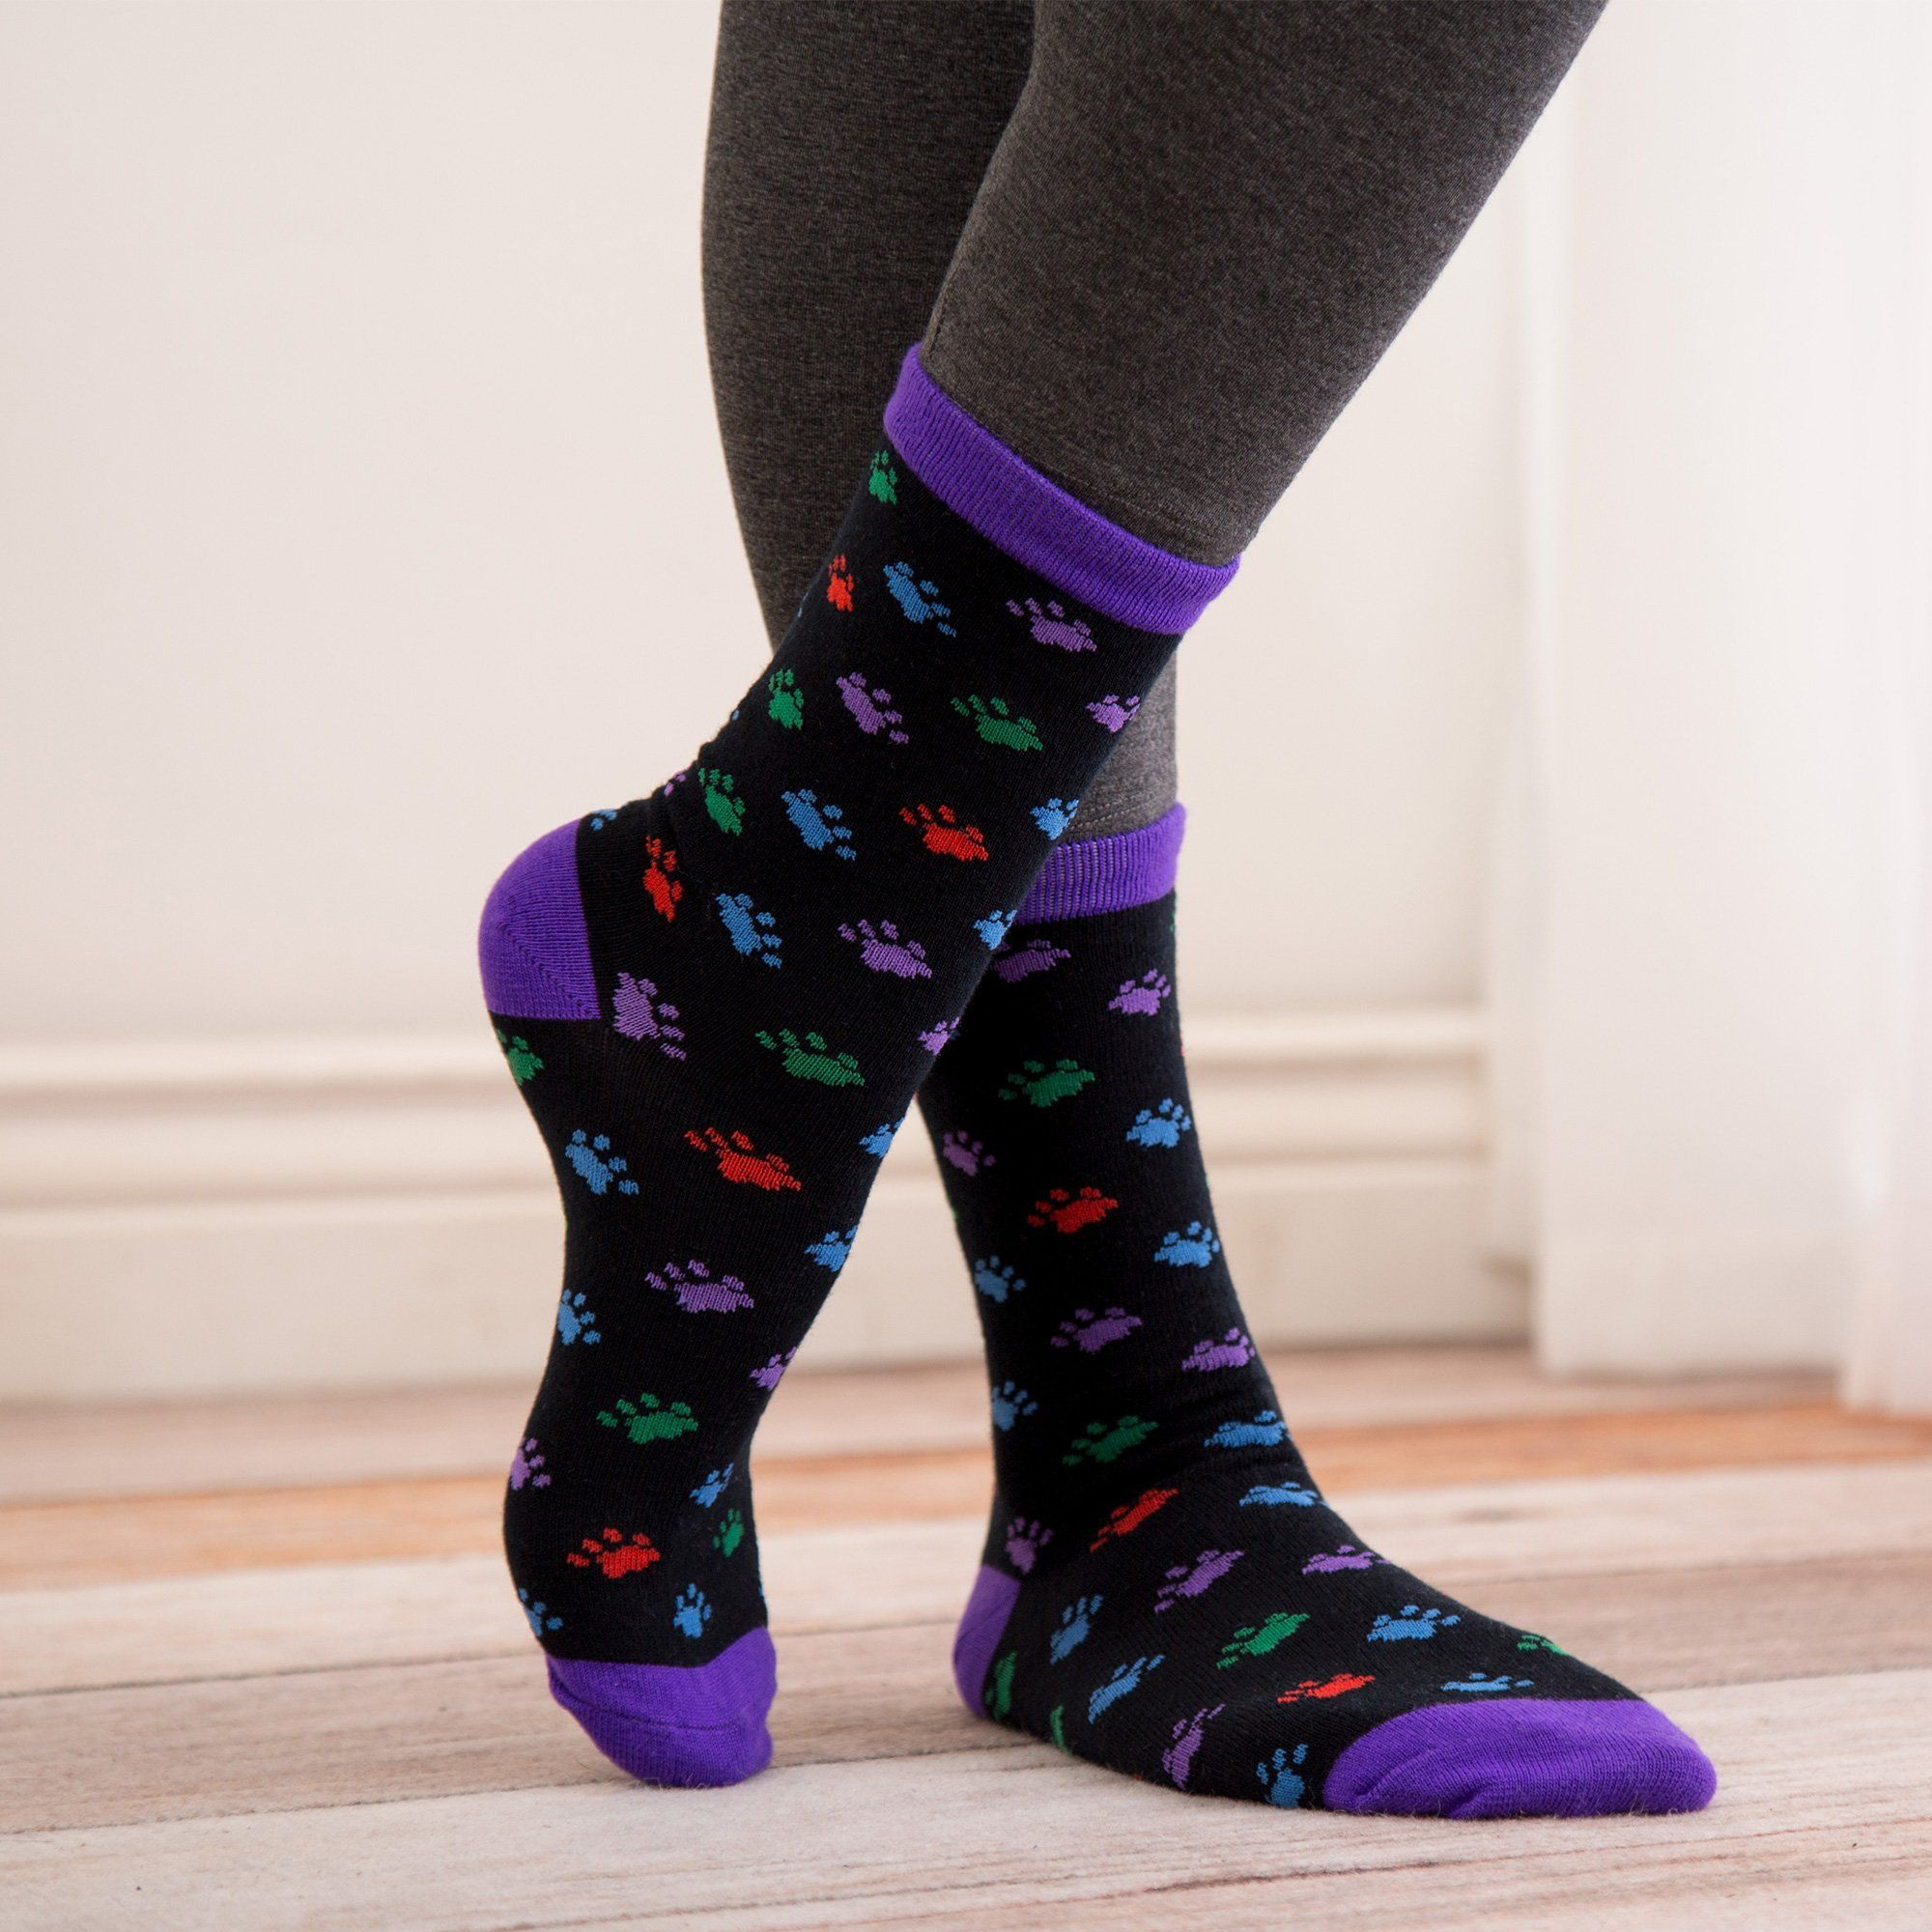 $3.99 - All Over Paw Multicolor Socks